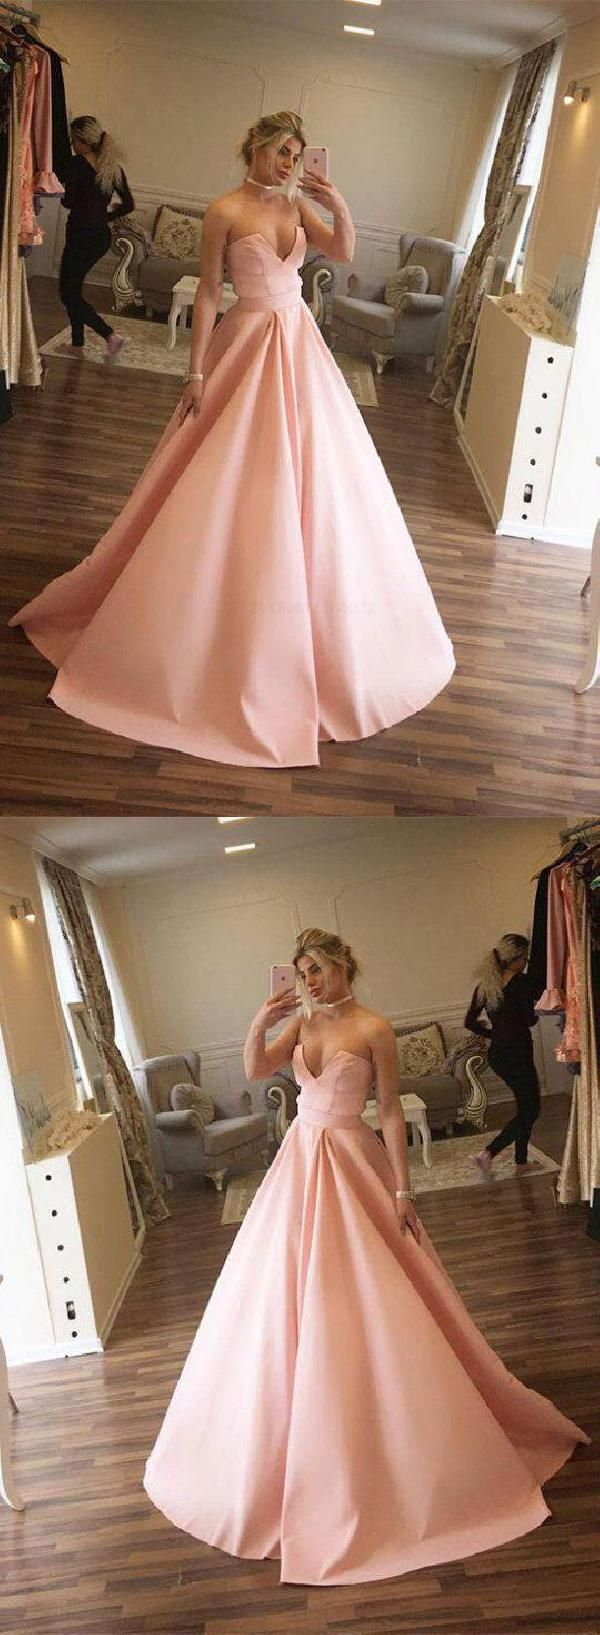 Absorbing ball gown pink in prom dresses pinterest